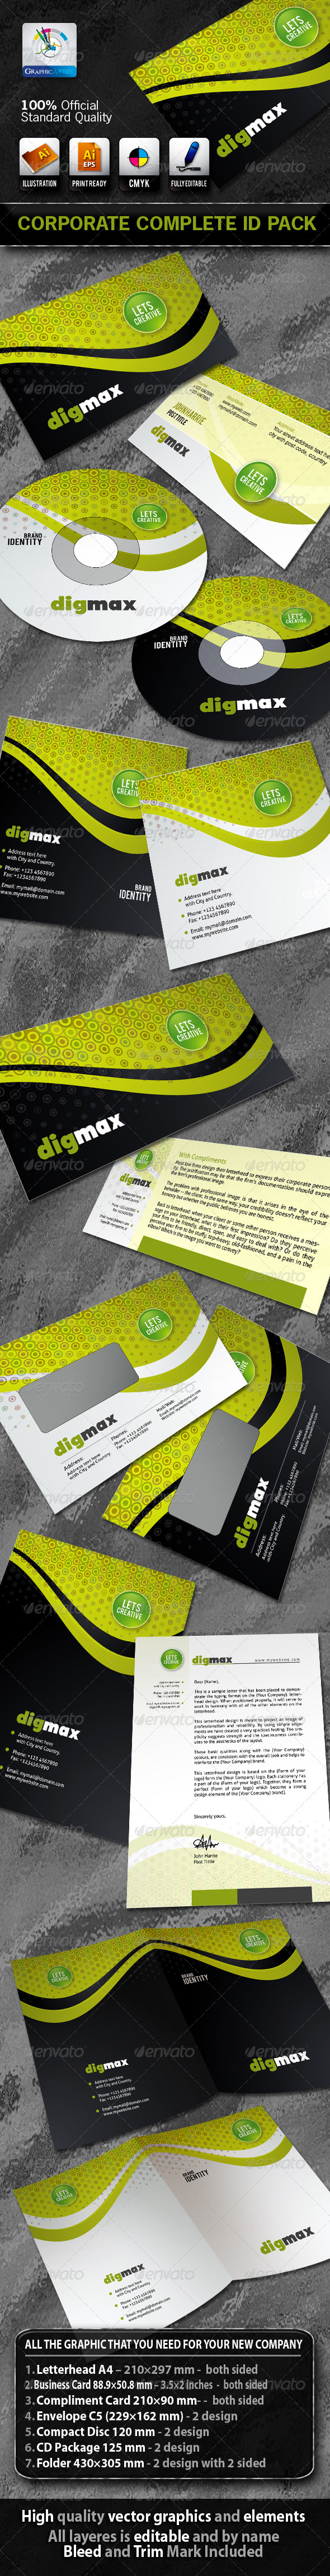 DigMax Business Corporate ID Pack - Stationery Print Templates